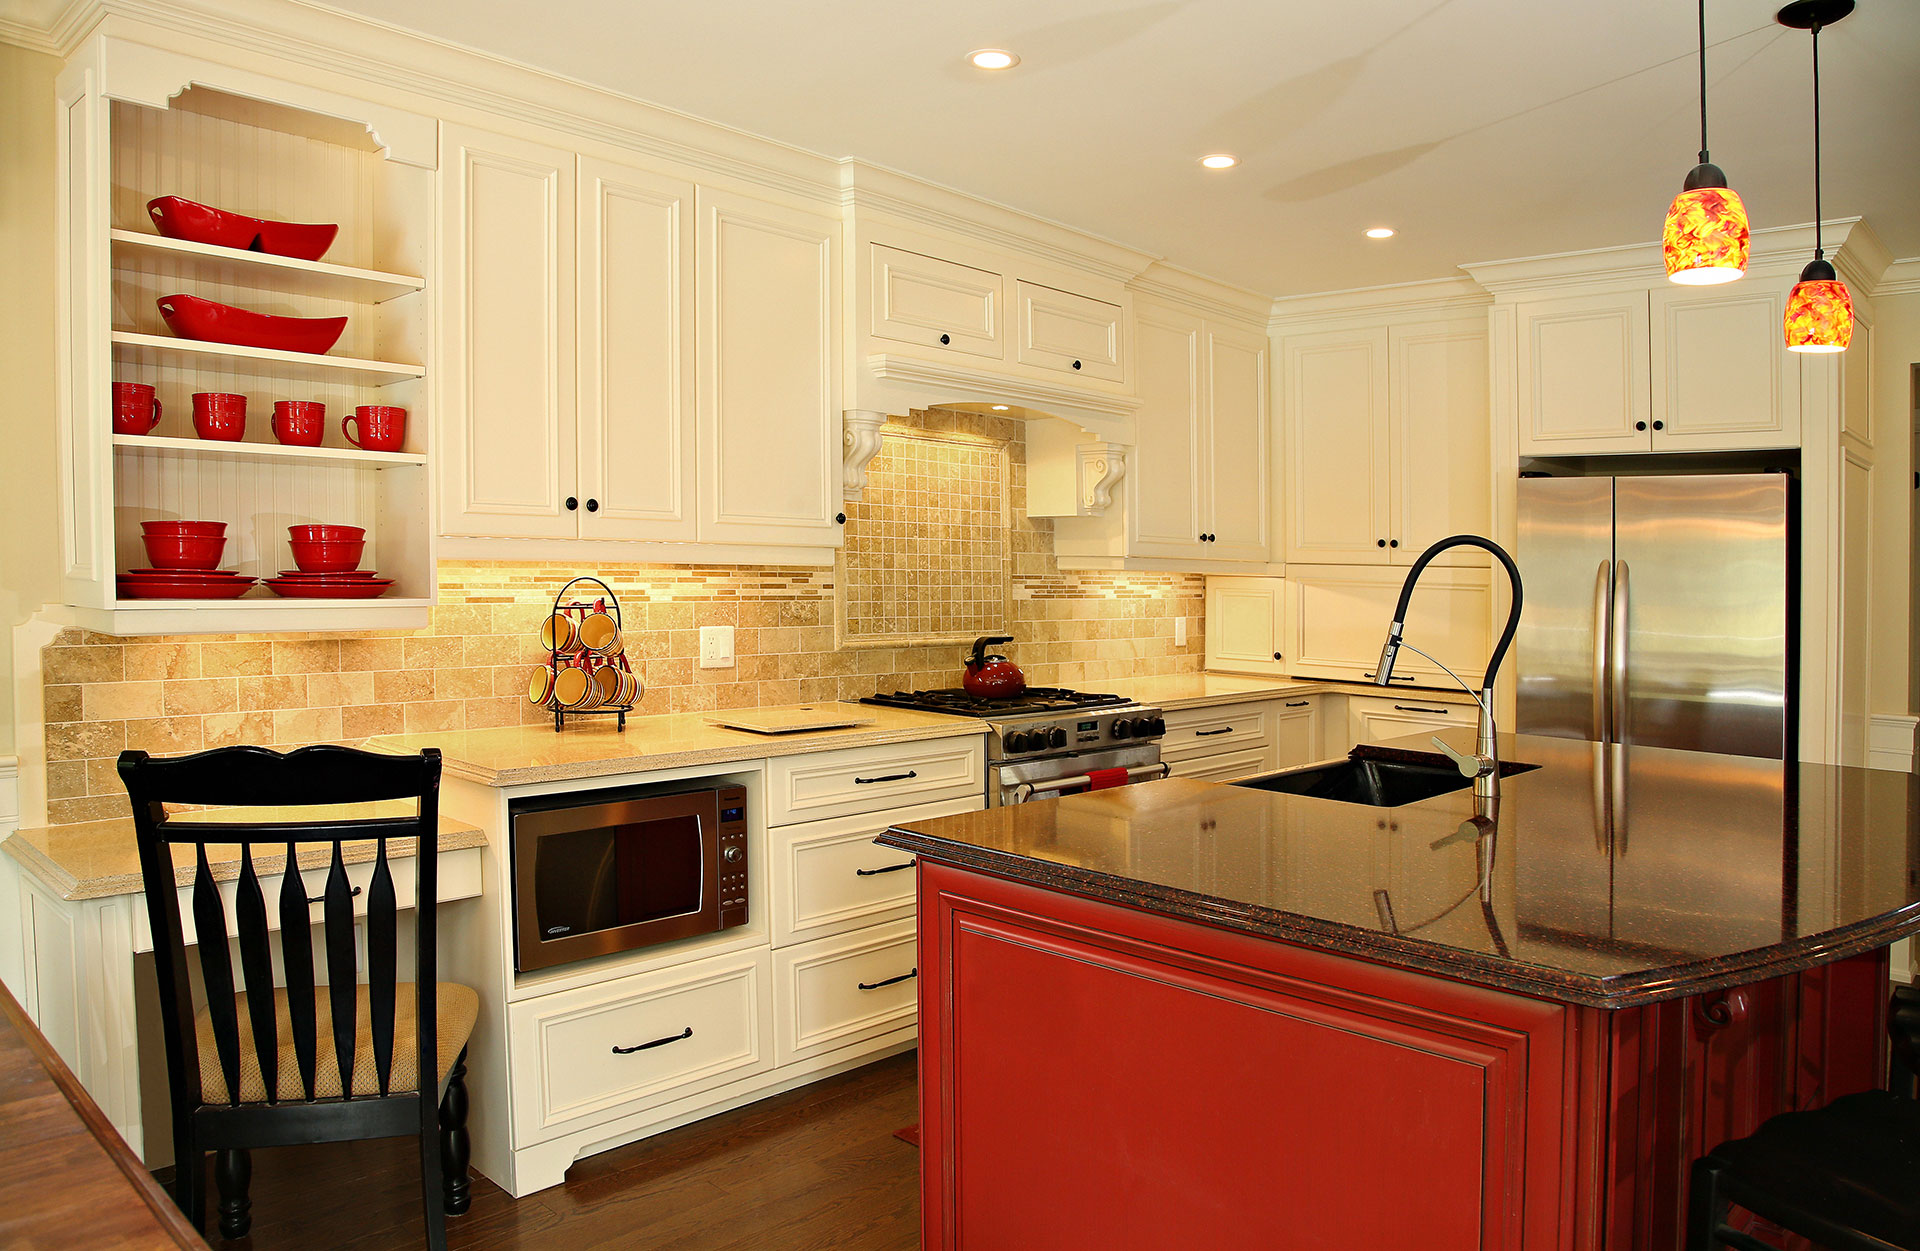 traditional kitchen, decorative rangehood, white cabinets, red island, microwave under counter wood floors in kitchens, Installation Services - Sheridan Interiors, sheridan interiors kitchens and baths, kitchen designer cornwall, kitchen designer ottawa, interior design cornwall, interior design ottawa